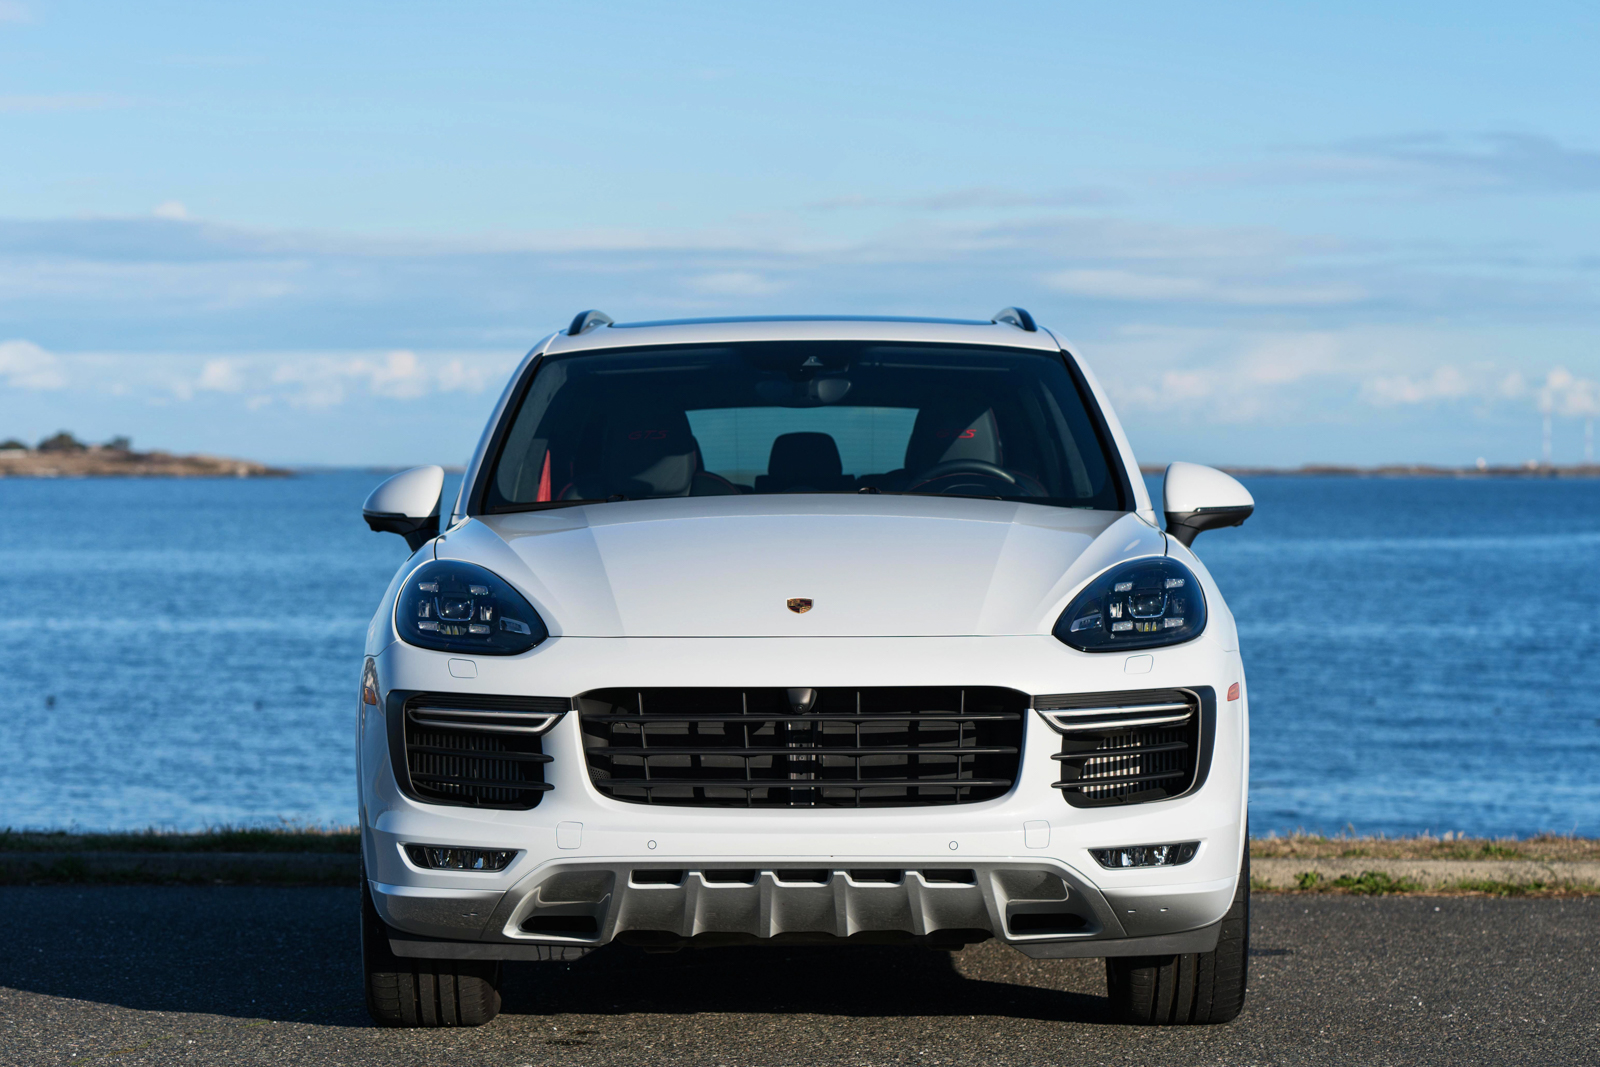 Used 4x4 Porsche Cayenne For Sale Saxton 4x4 Autos Post